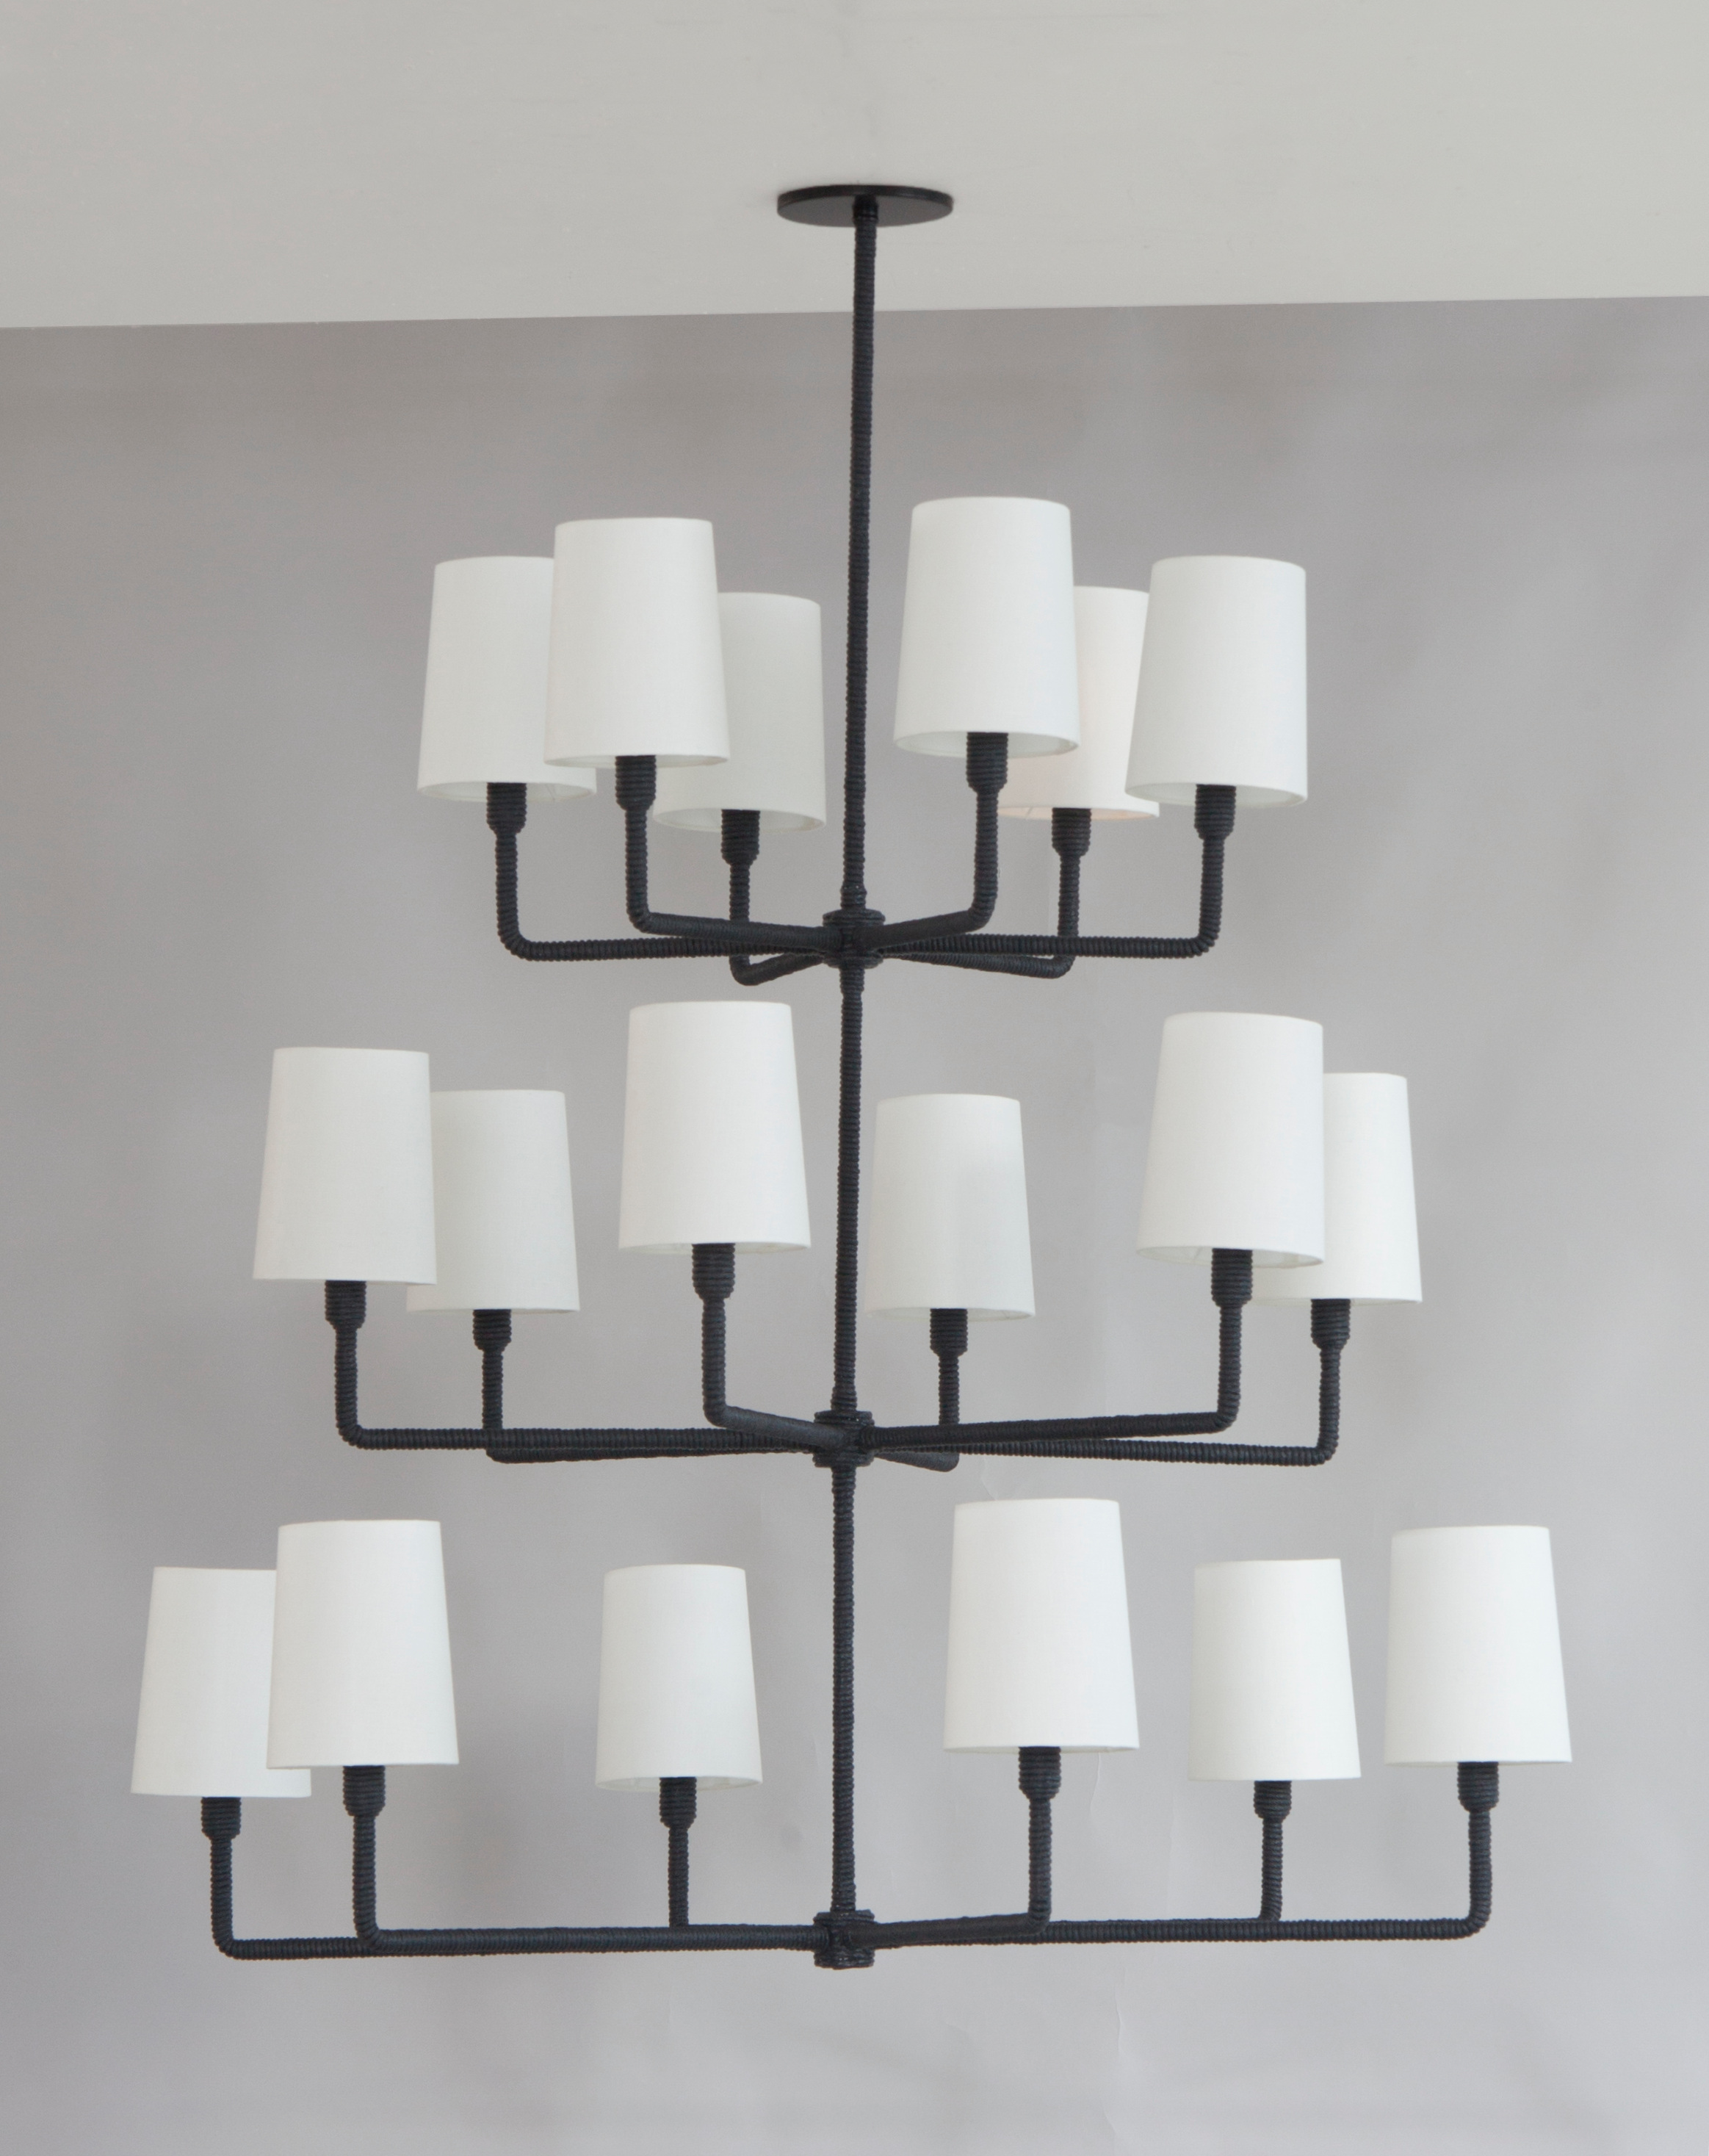 C-184+3-Tiered+Rope+Chandelier+-+Large+Shades+-+Black+Rope.jpg